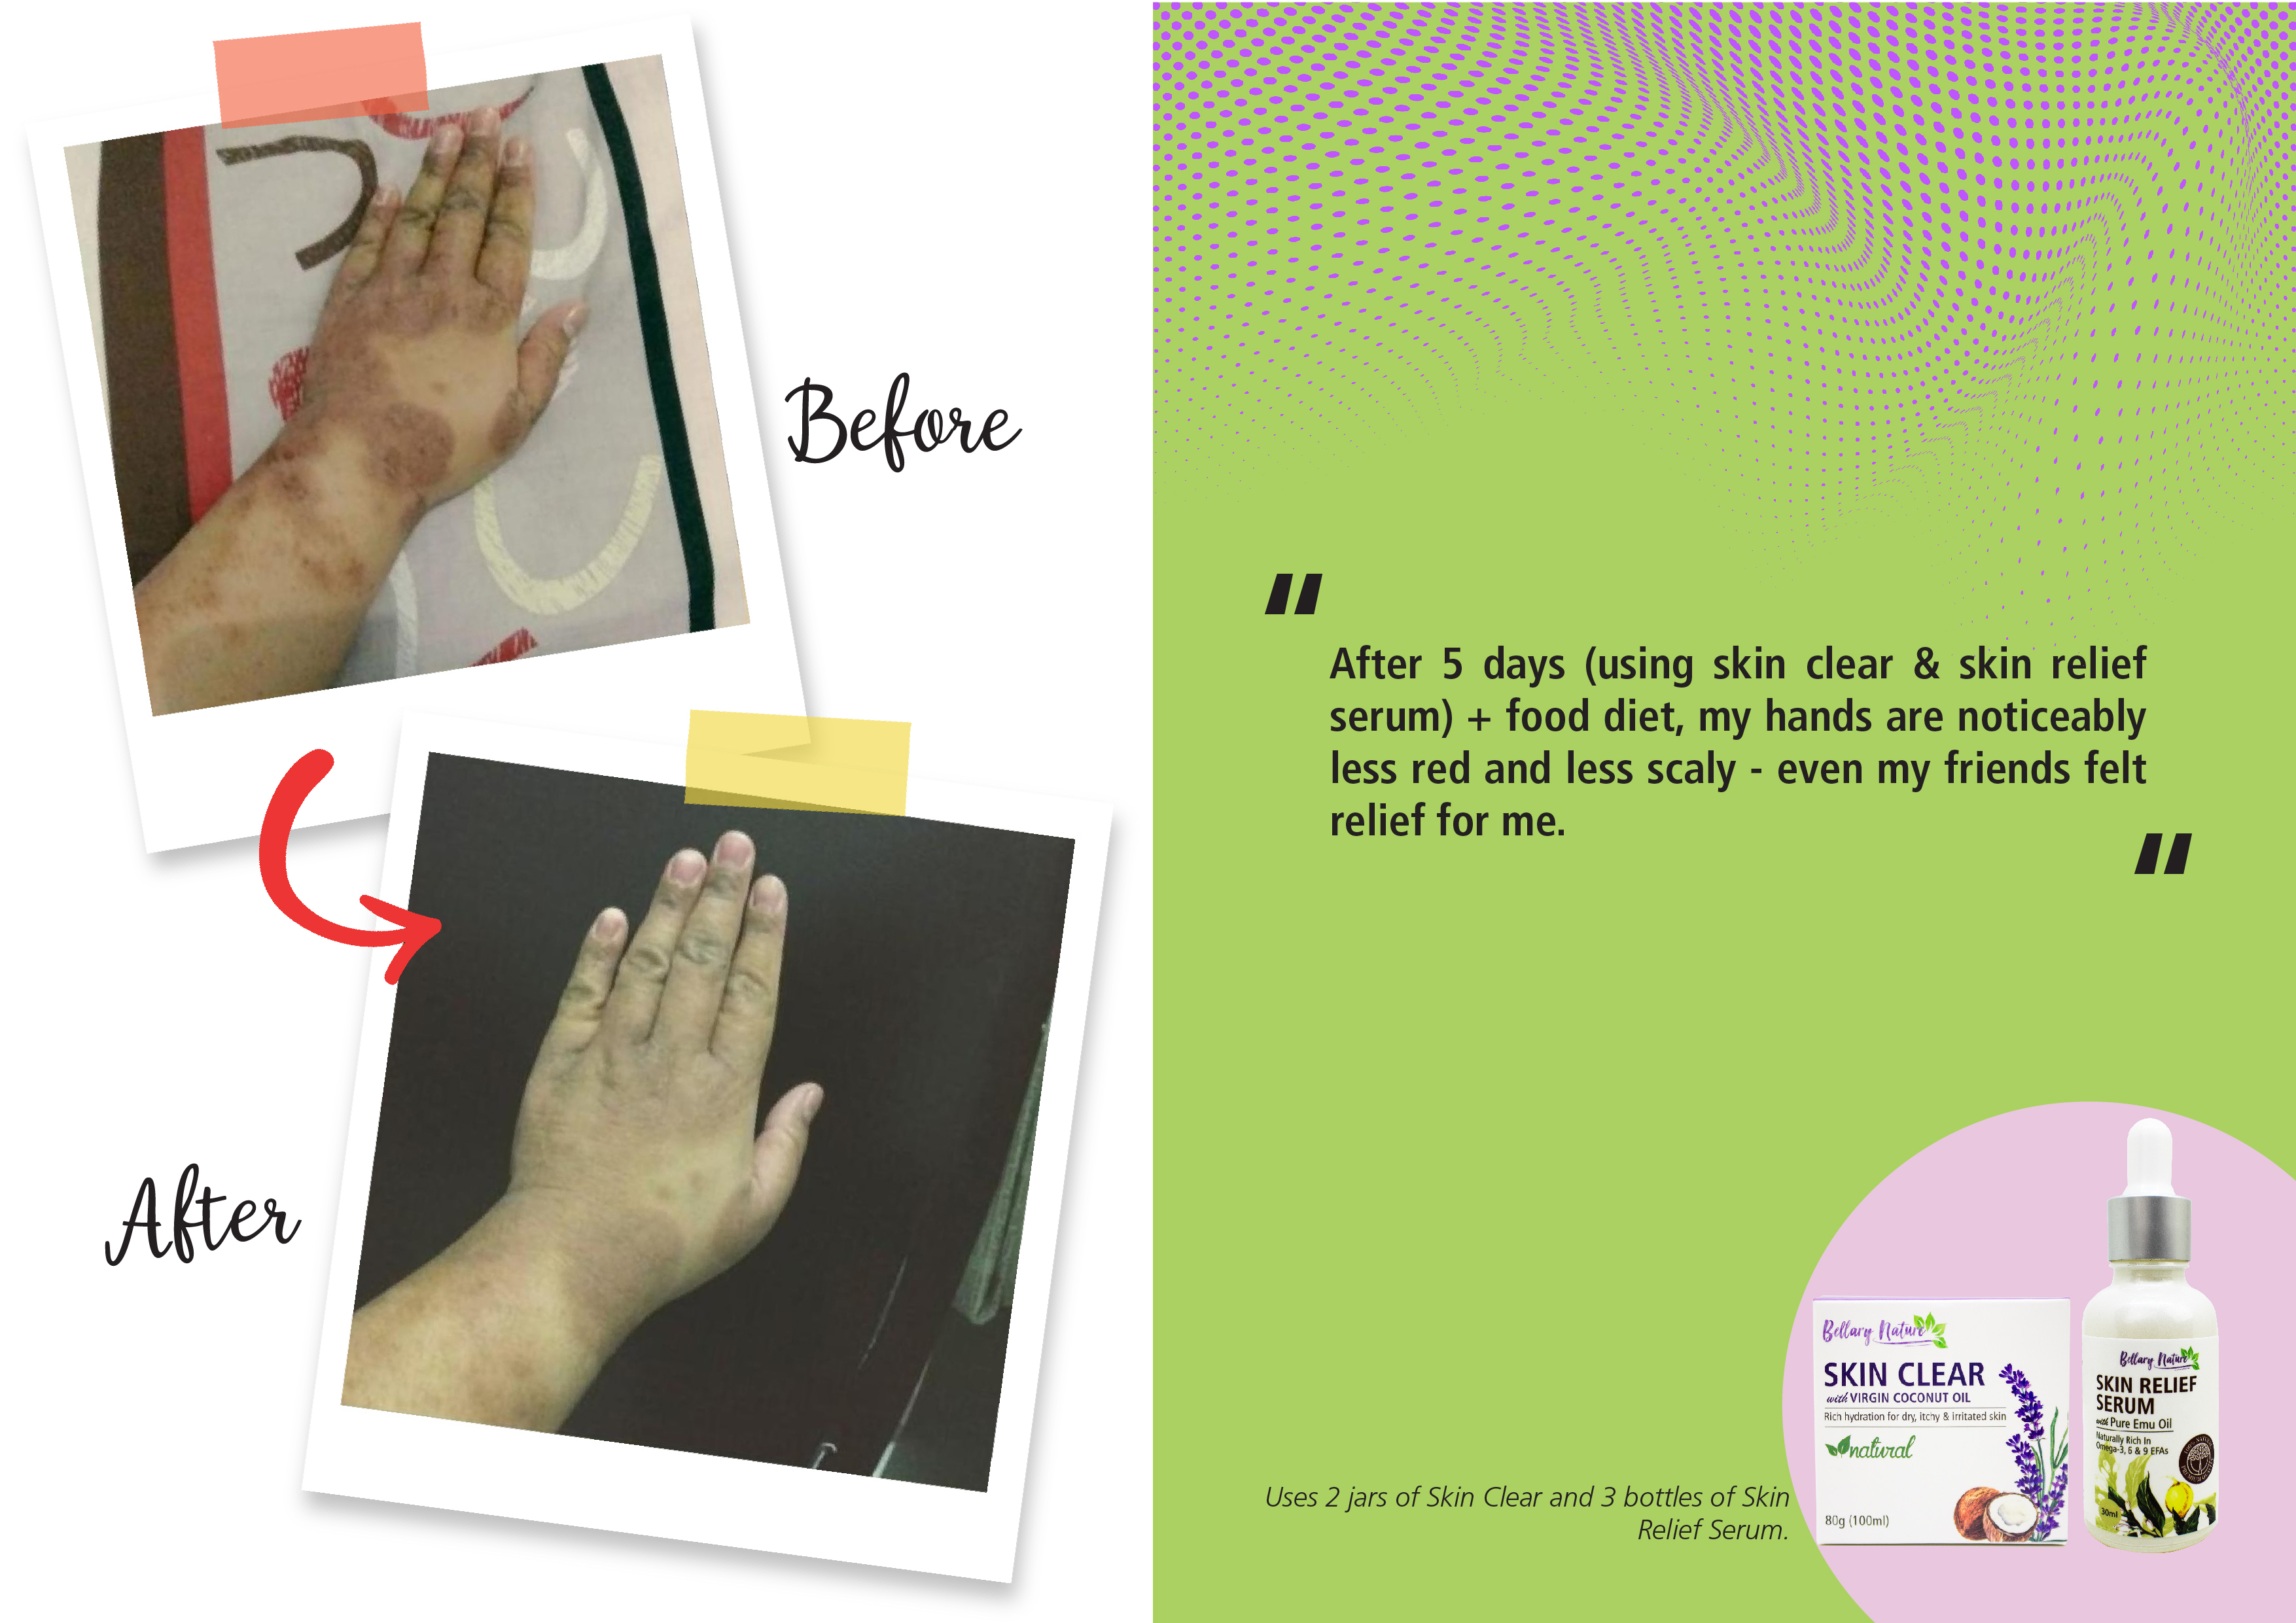 Skin Remedies Testimonials - IMAGES-03